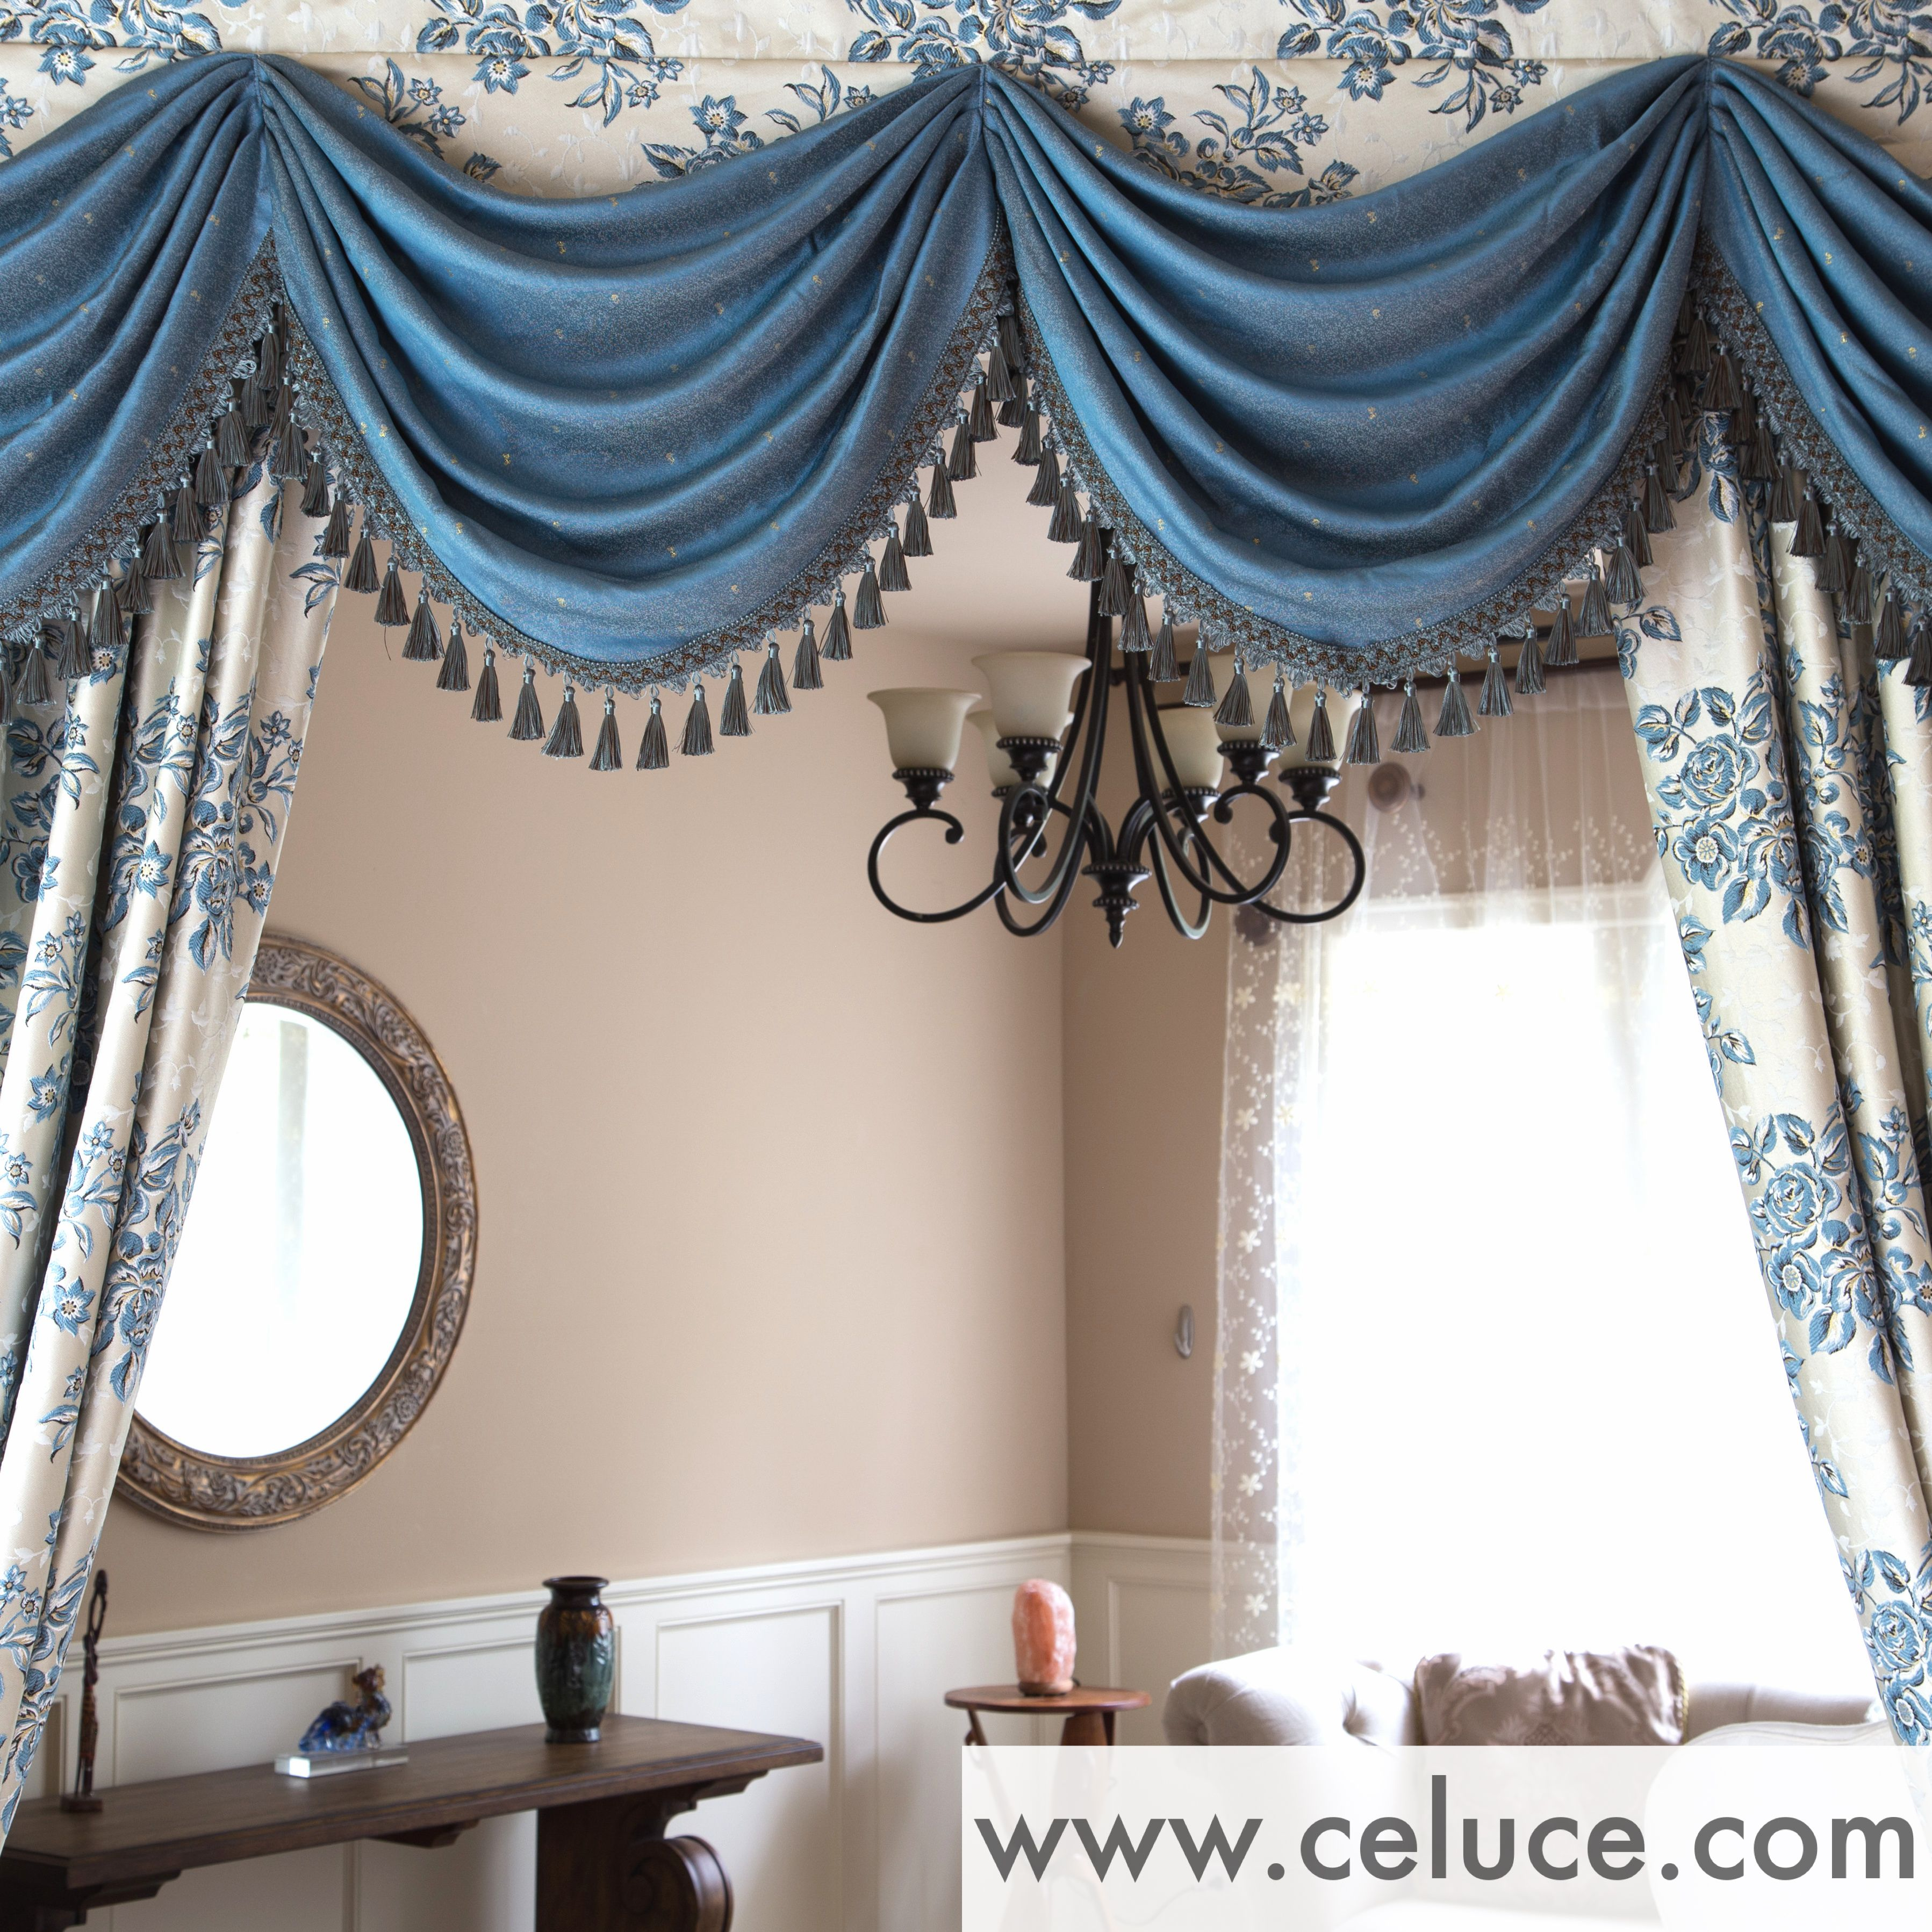 ideas and fringe curtains size images laceurtains ideasurtain valances full window lace victorian curtain with style drapes swags gray of amazing